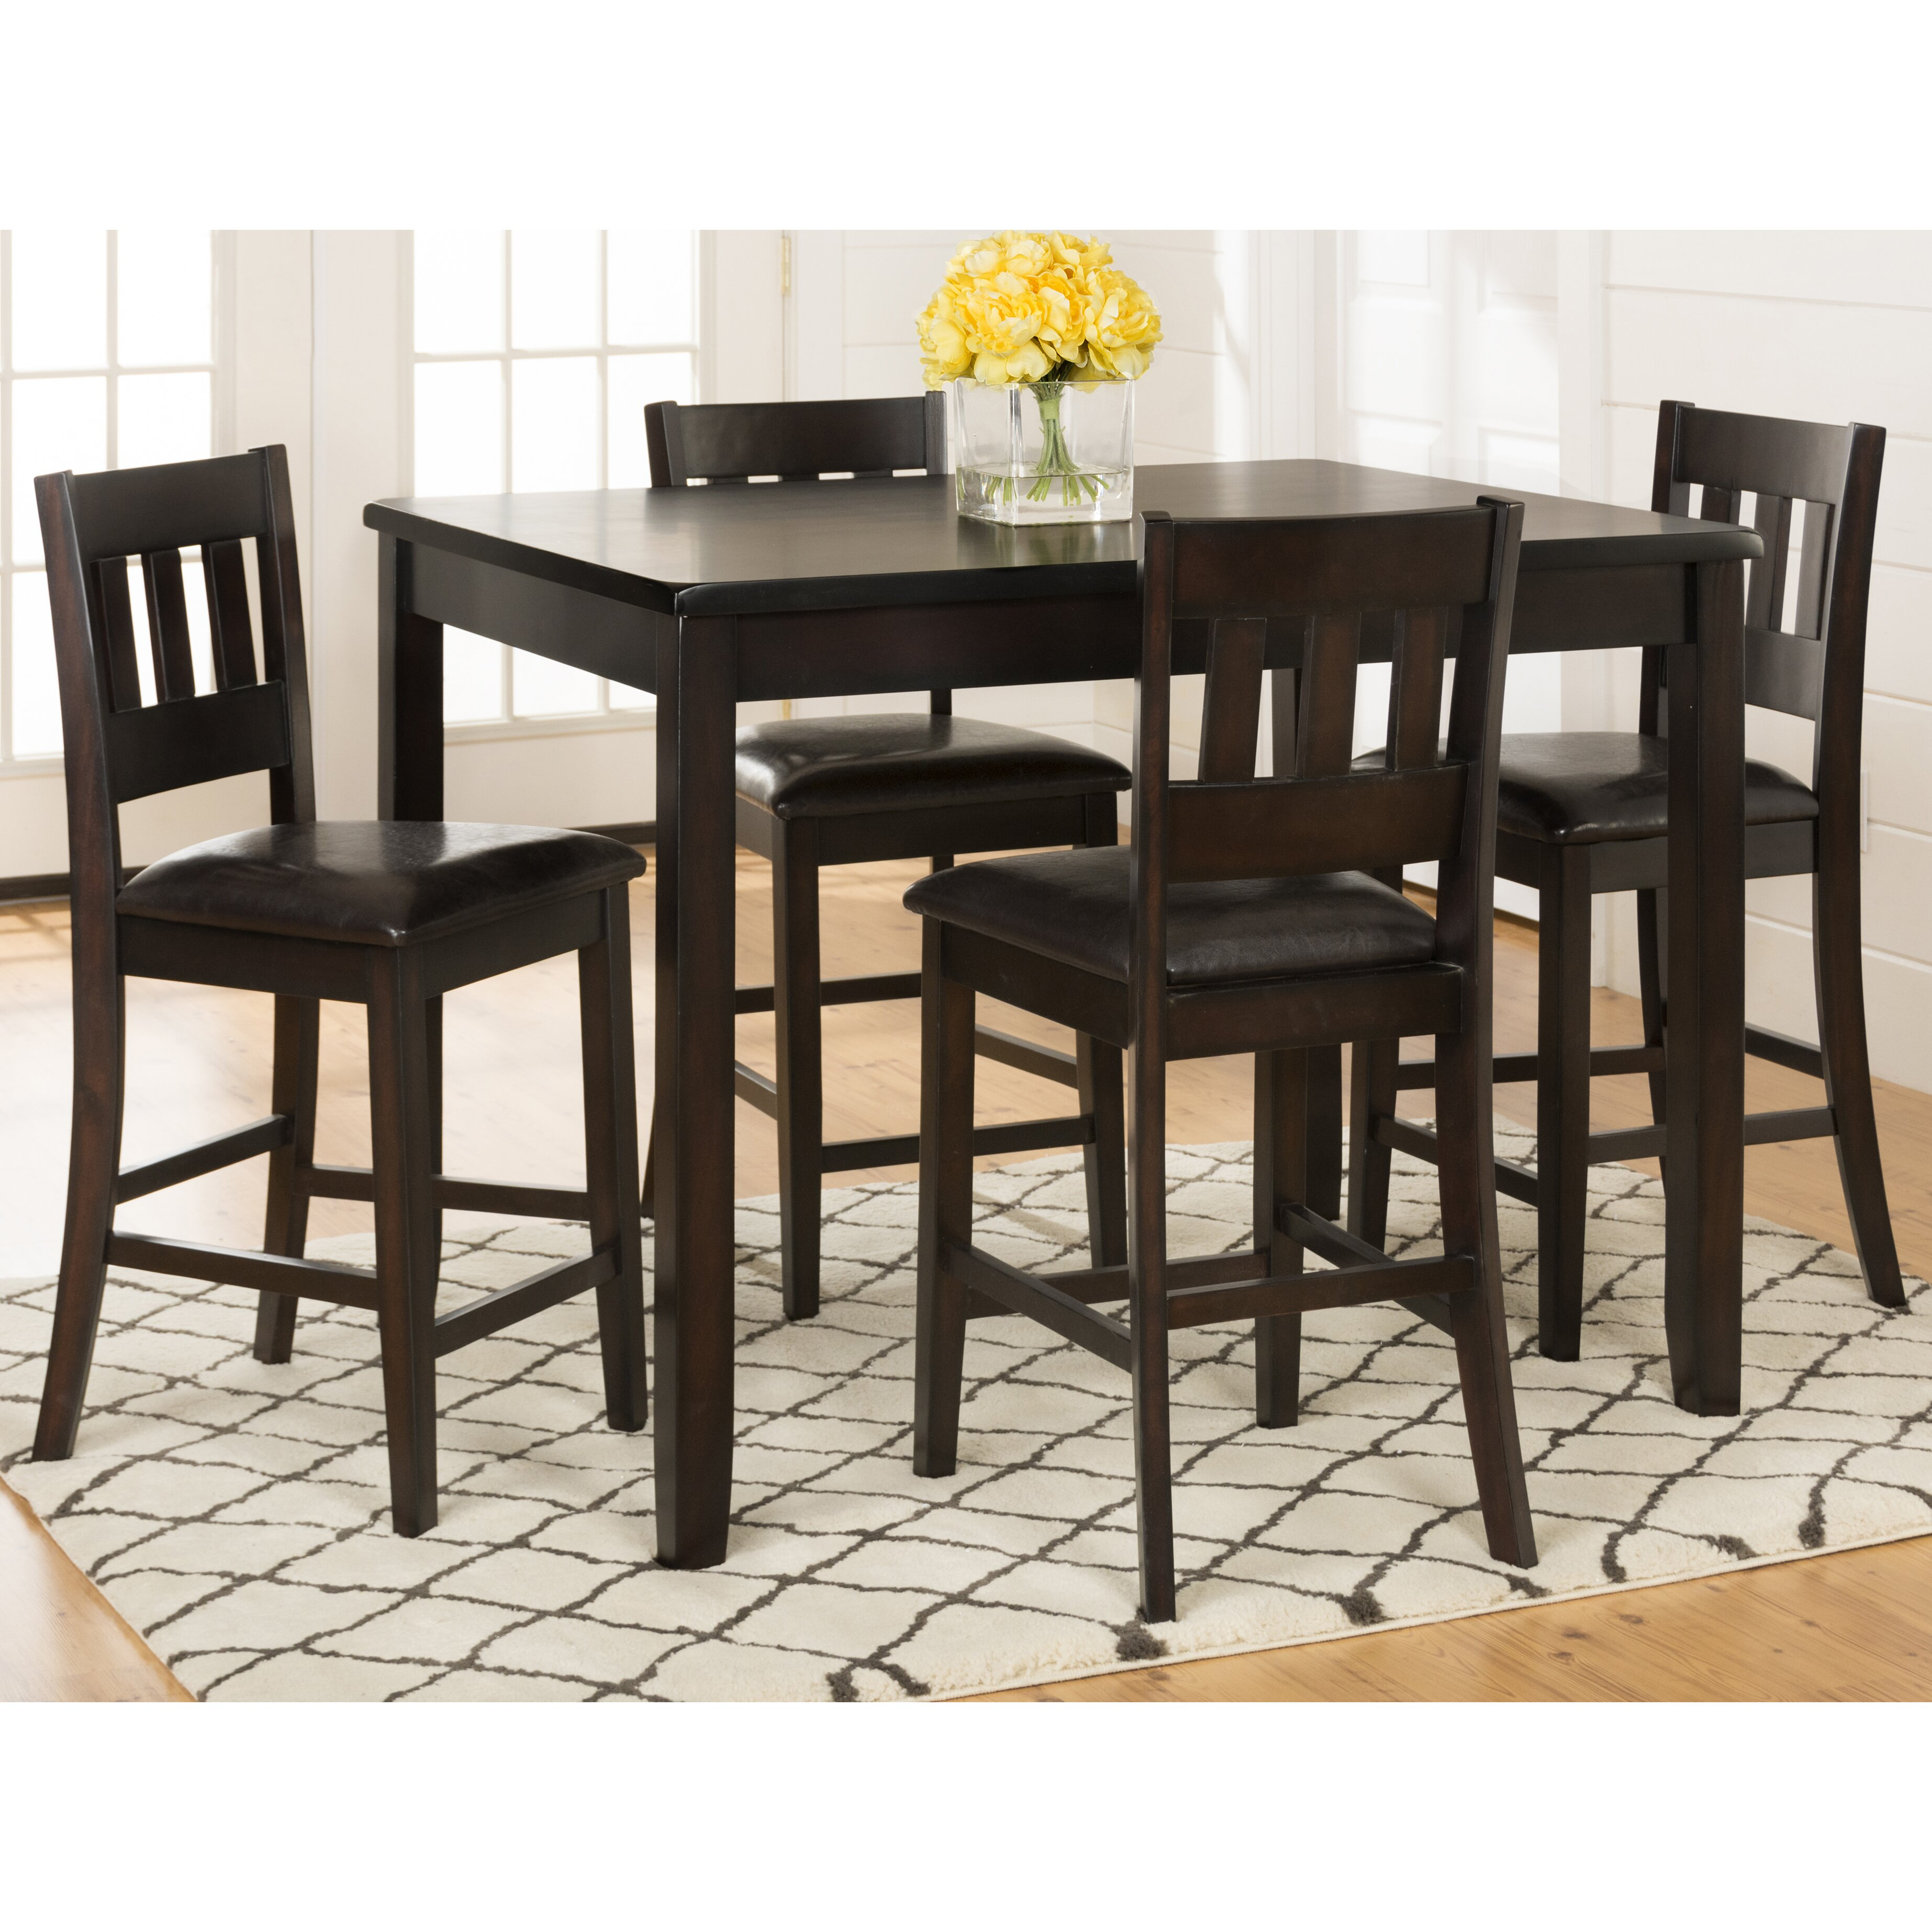 Kitchen Pub Table And Chairs Latitude Run Barney 5 Piece Counter Height Pub Table Set Reviews